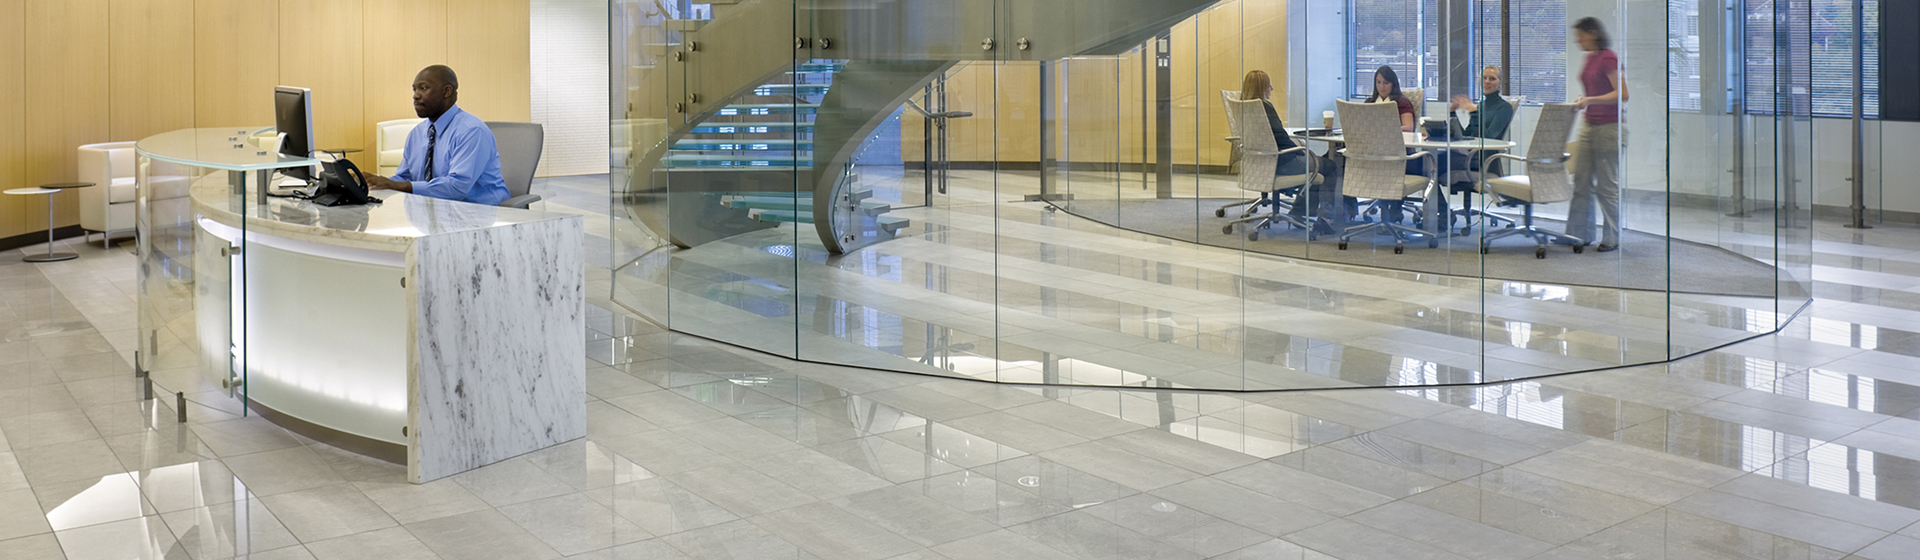 ASCO headquarters lobby